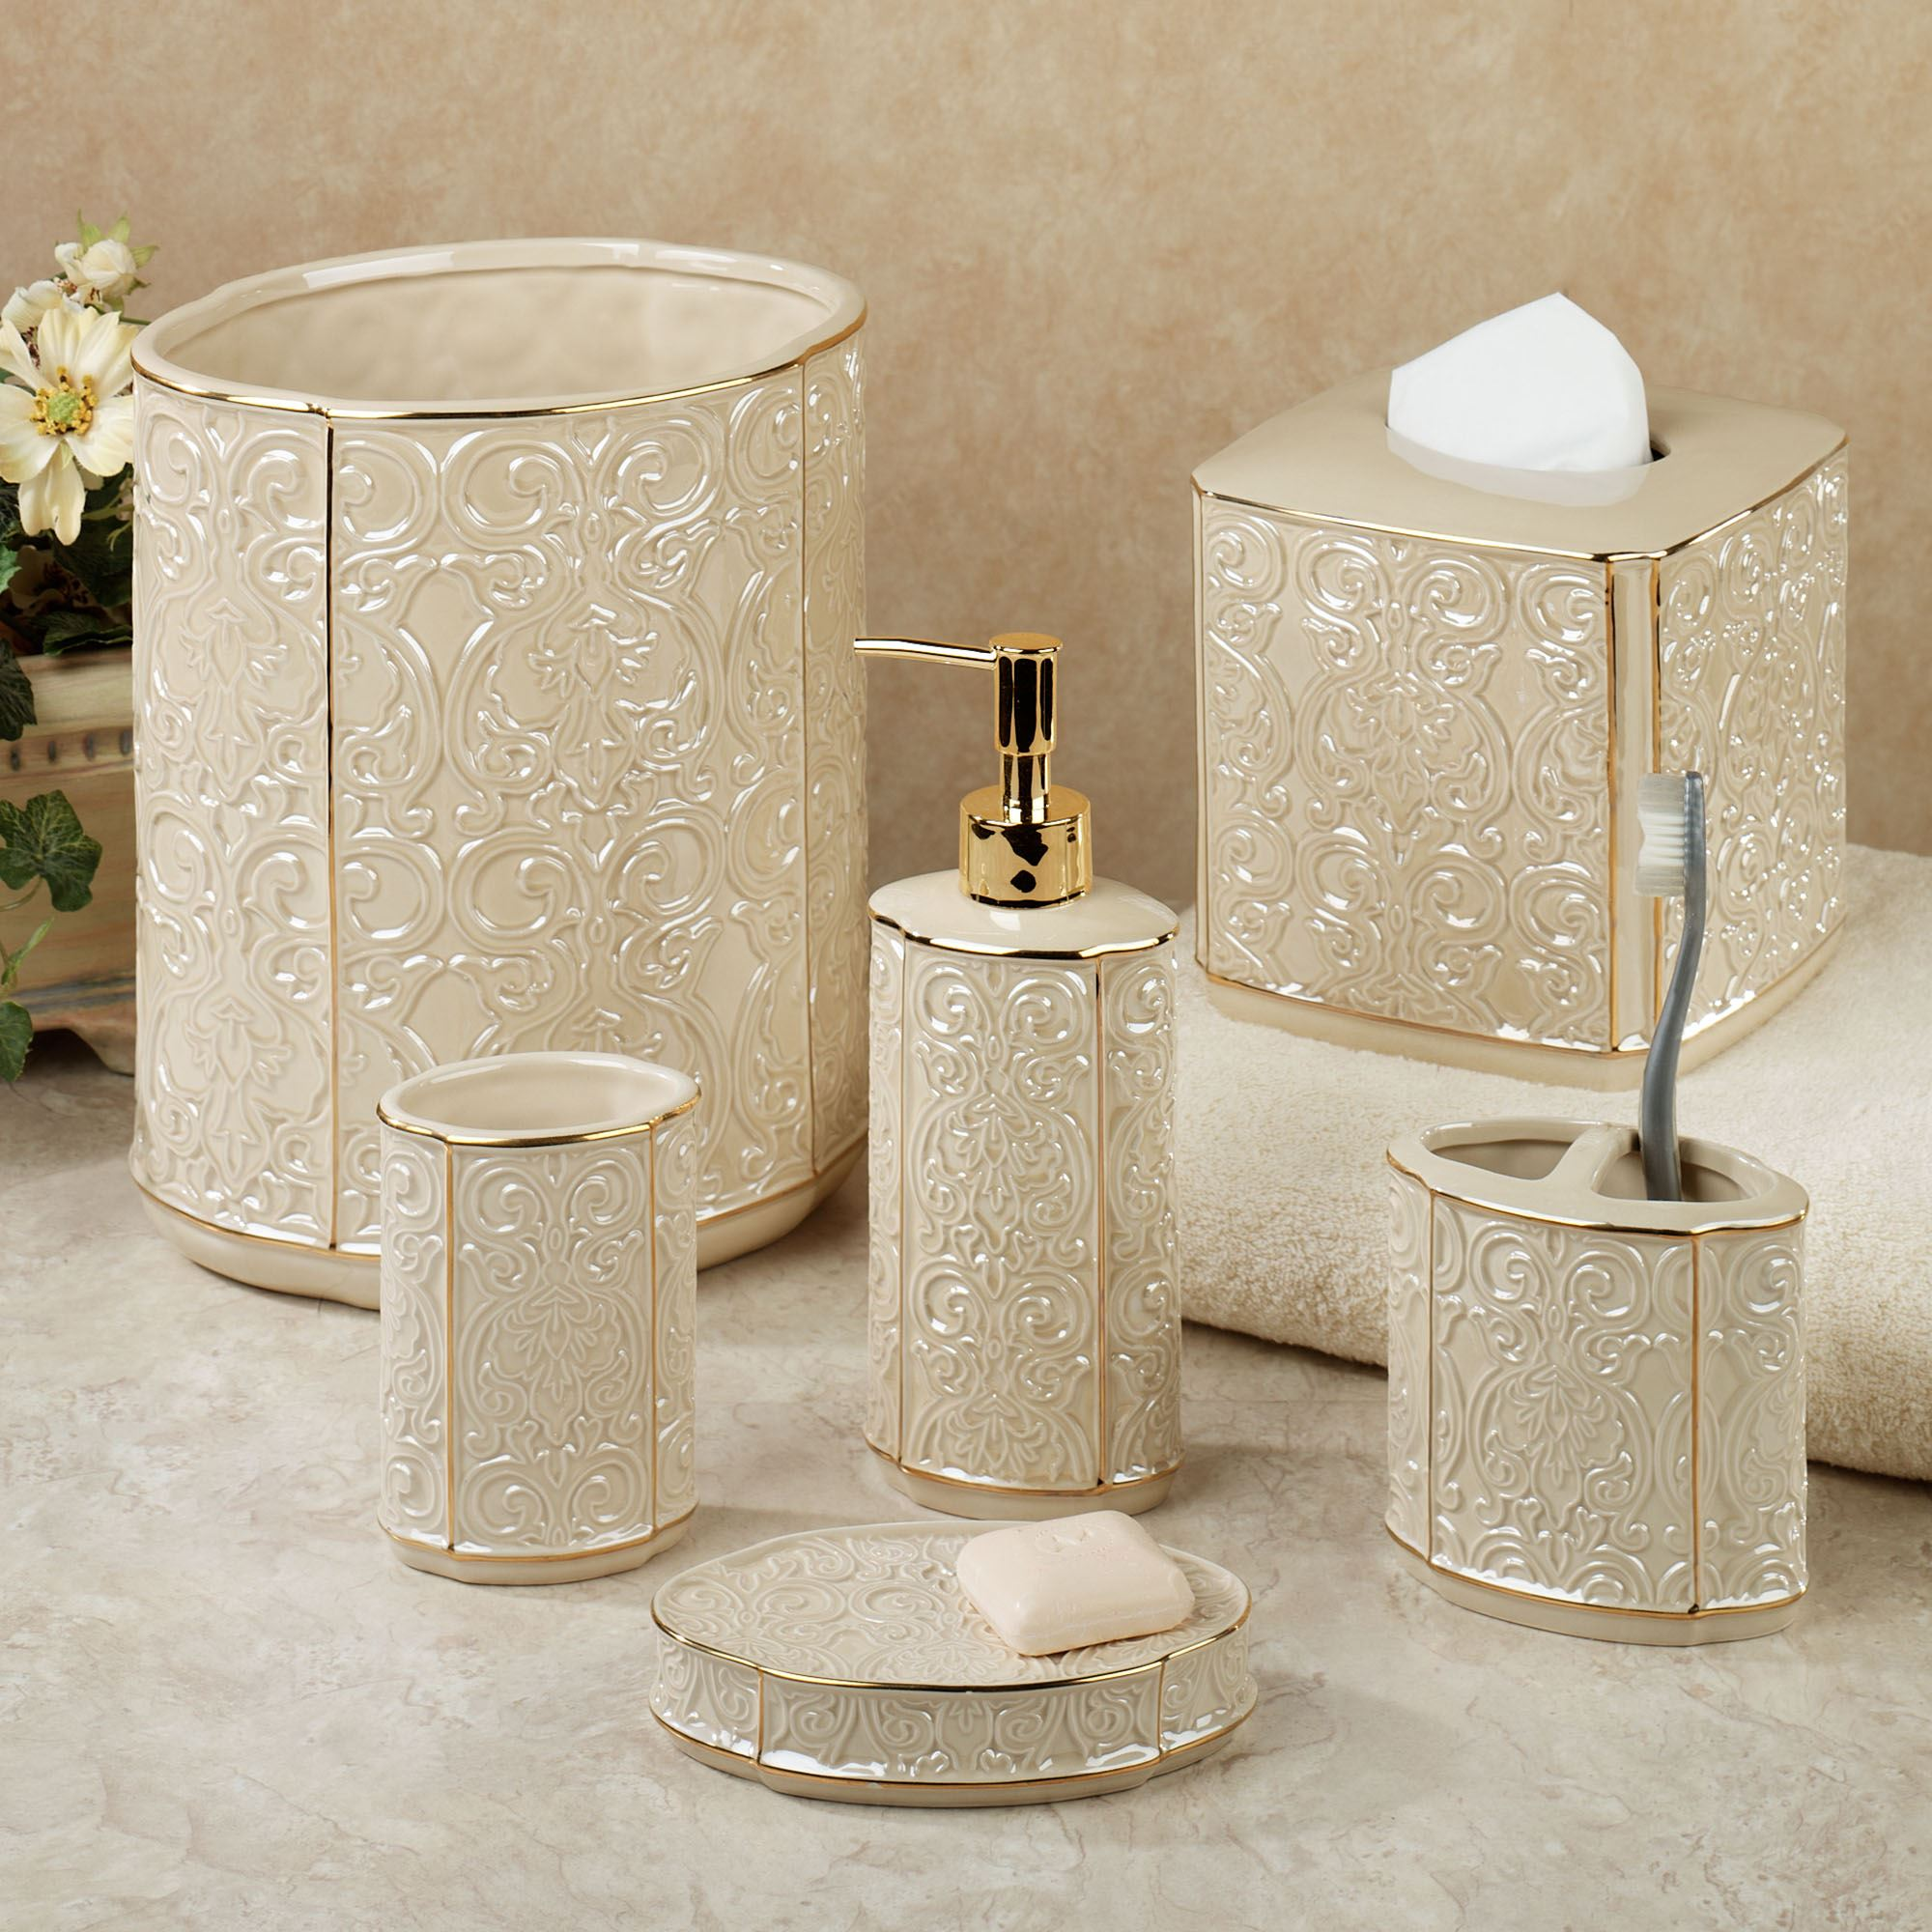 Furla cream damask ceramic bath accessories for Where to get bathroom accessories